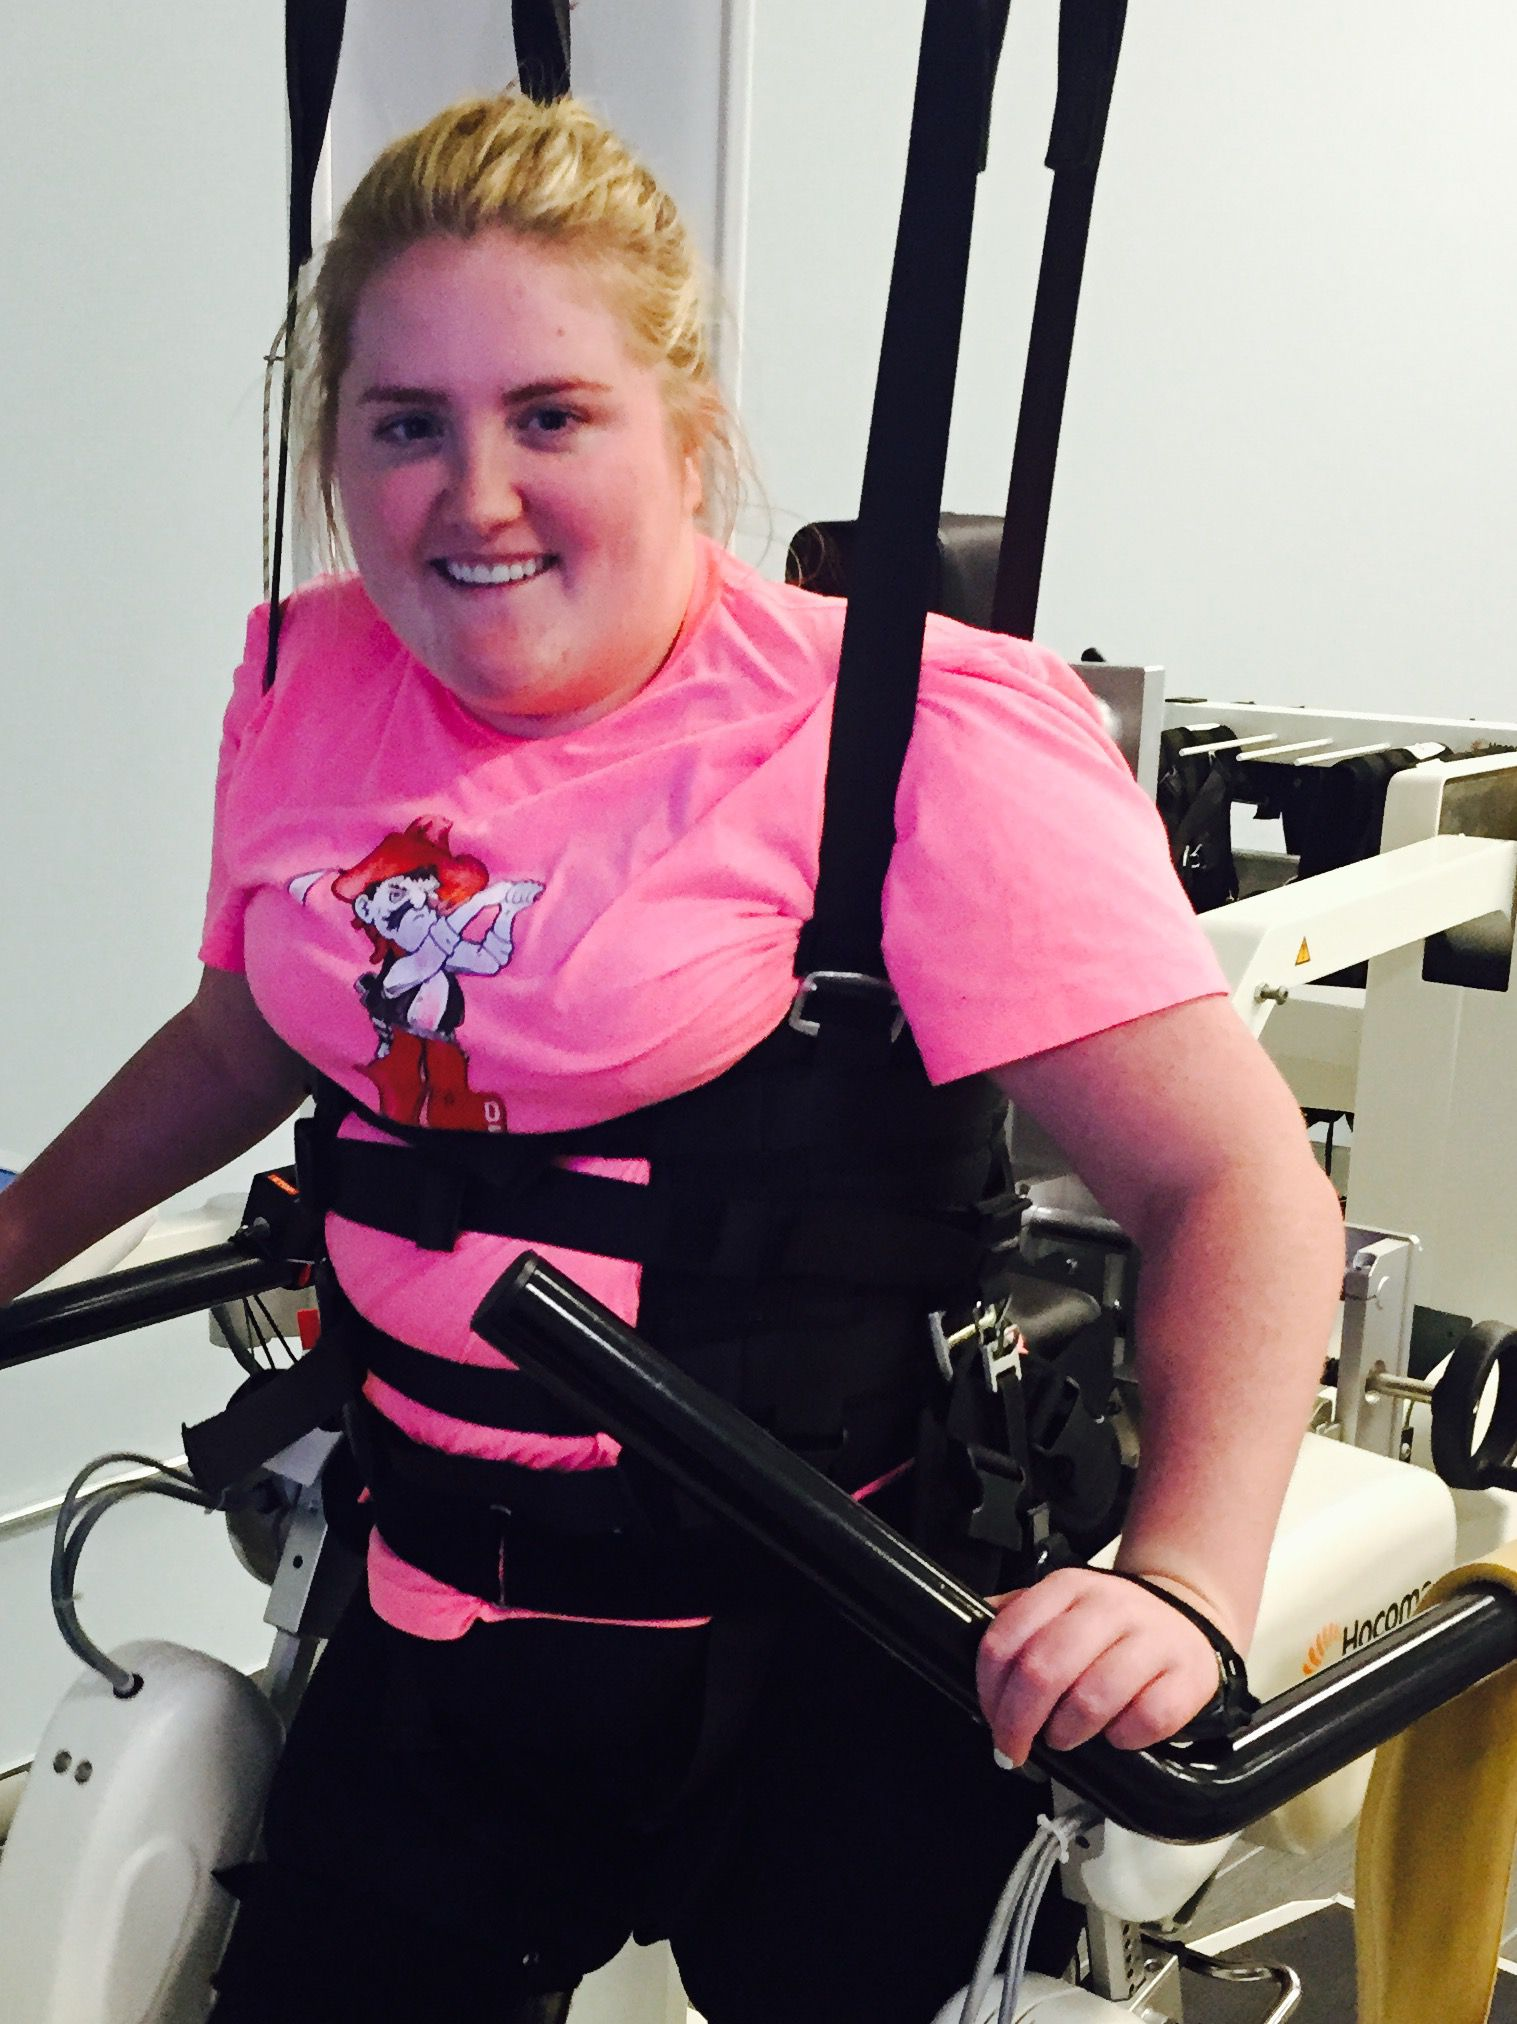 Sarah Milburn, 24, at physical therapy. She was paralyzed after the Uber van she was riding in crashed into another vehicle. She has some use of her hands and arms but is paralyzed from mid-chest down.